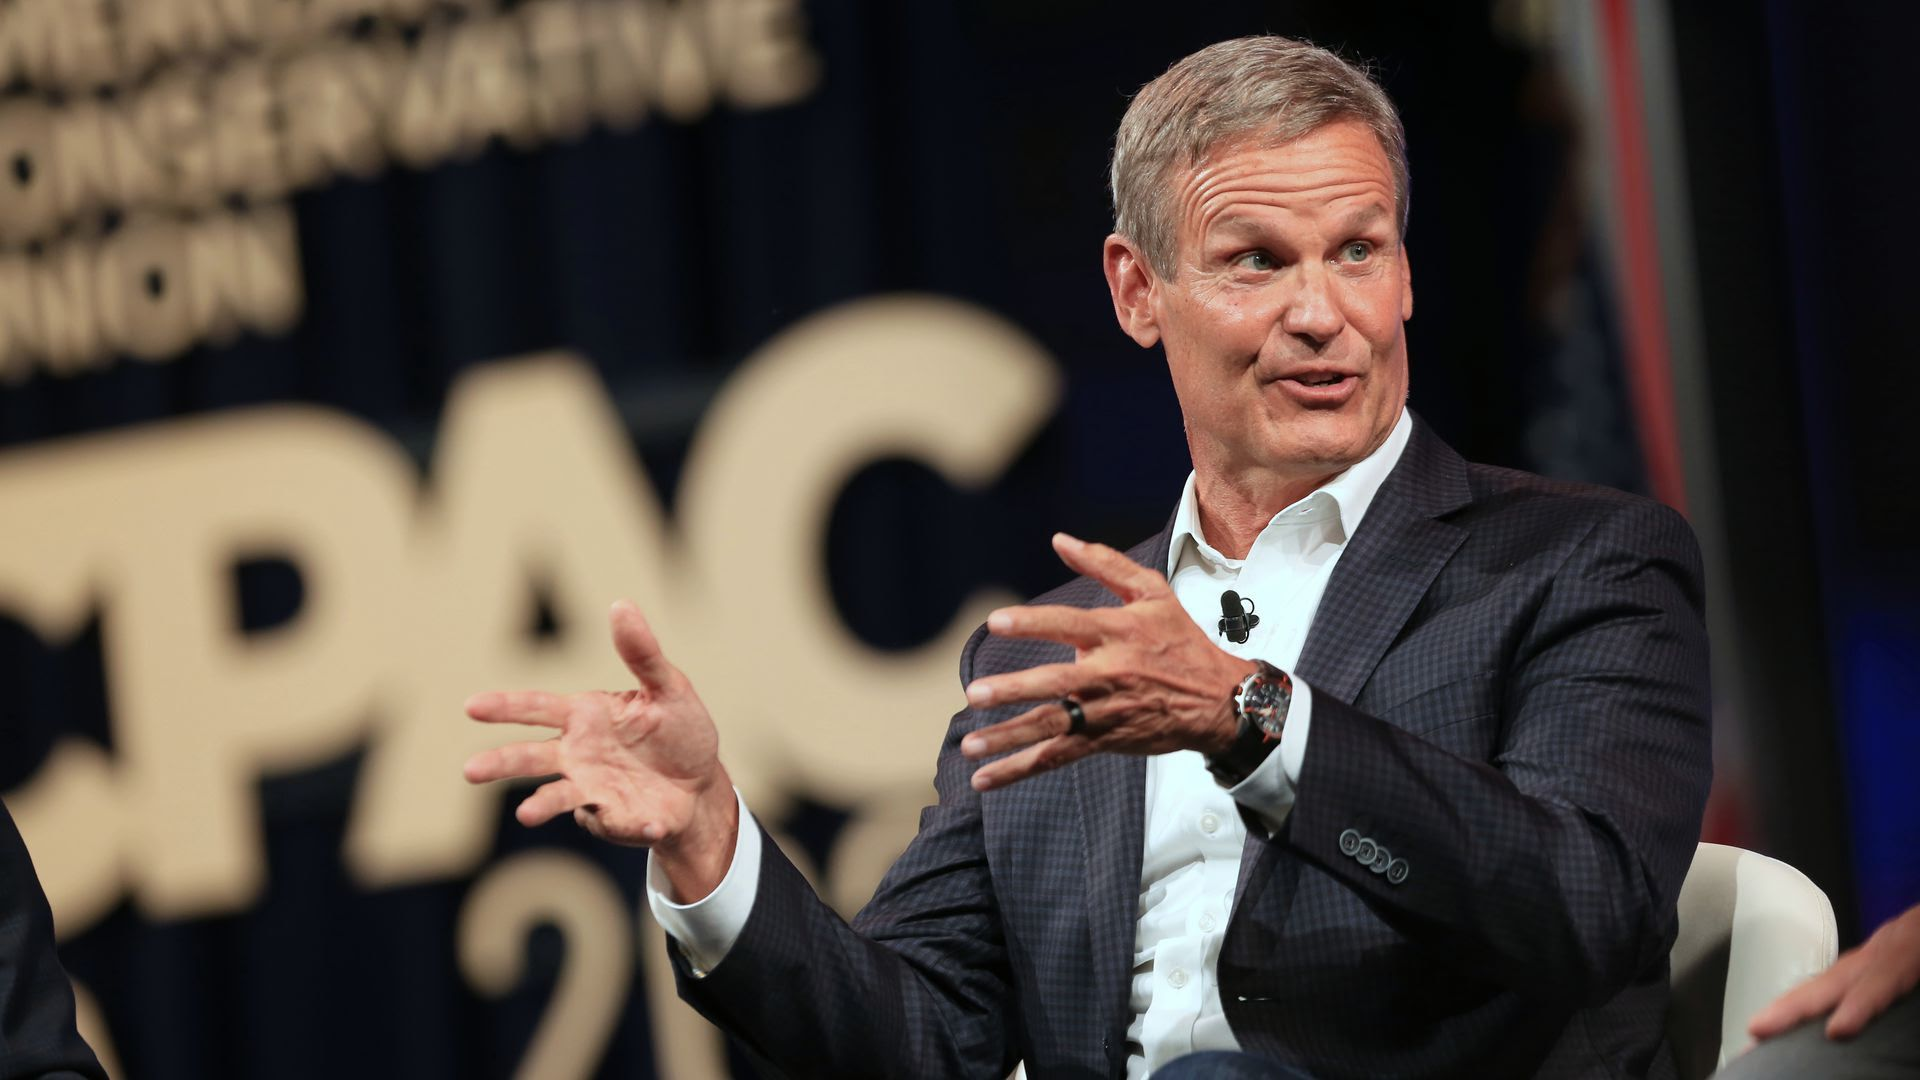 Gov. Bill Lee speaking during the 2021 Conservative Political Action Conference.